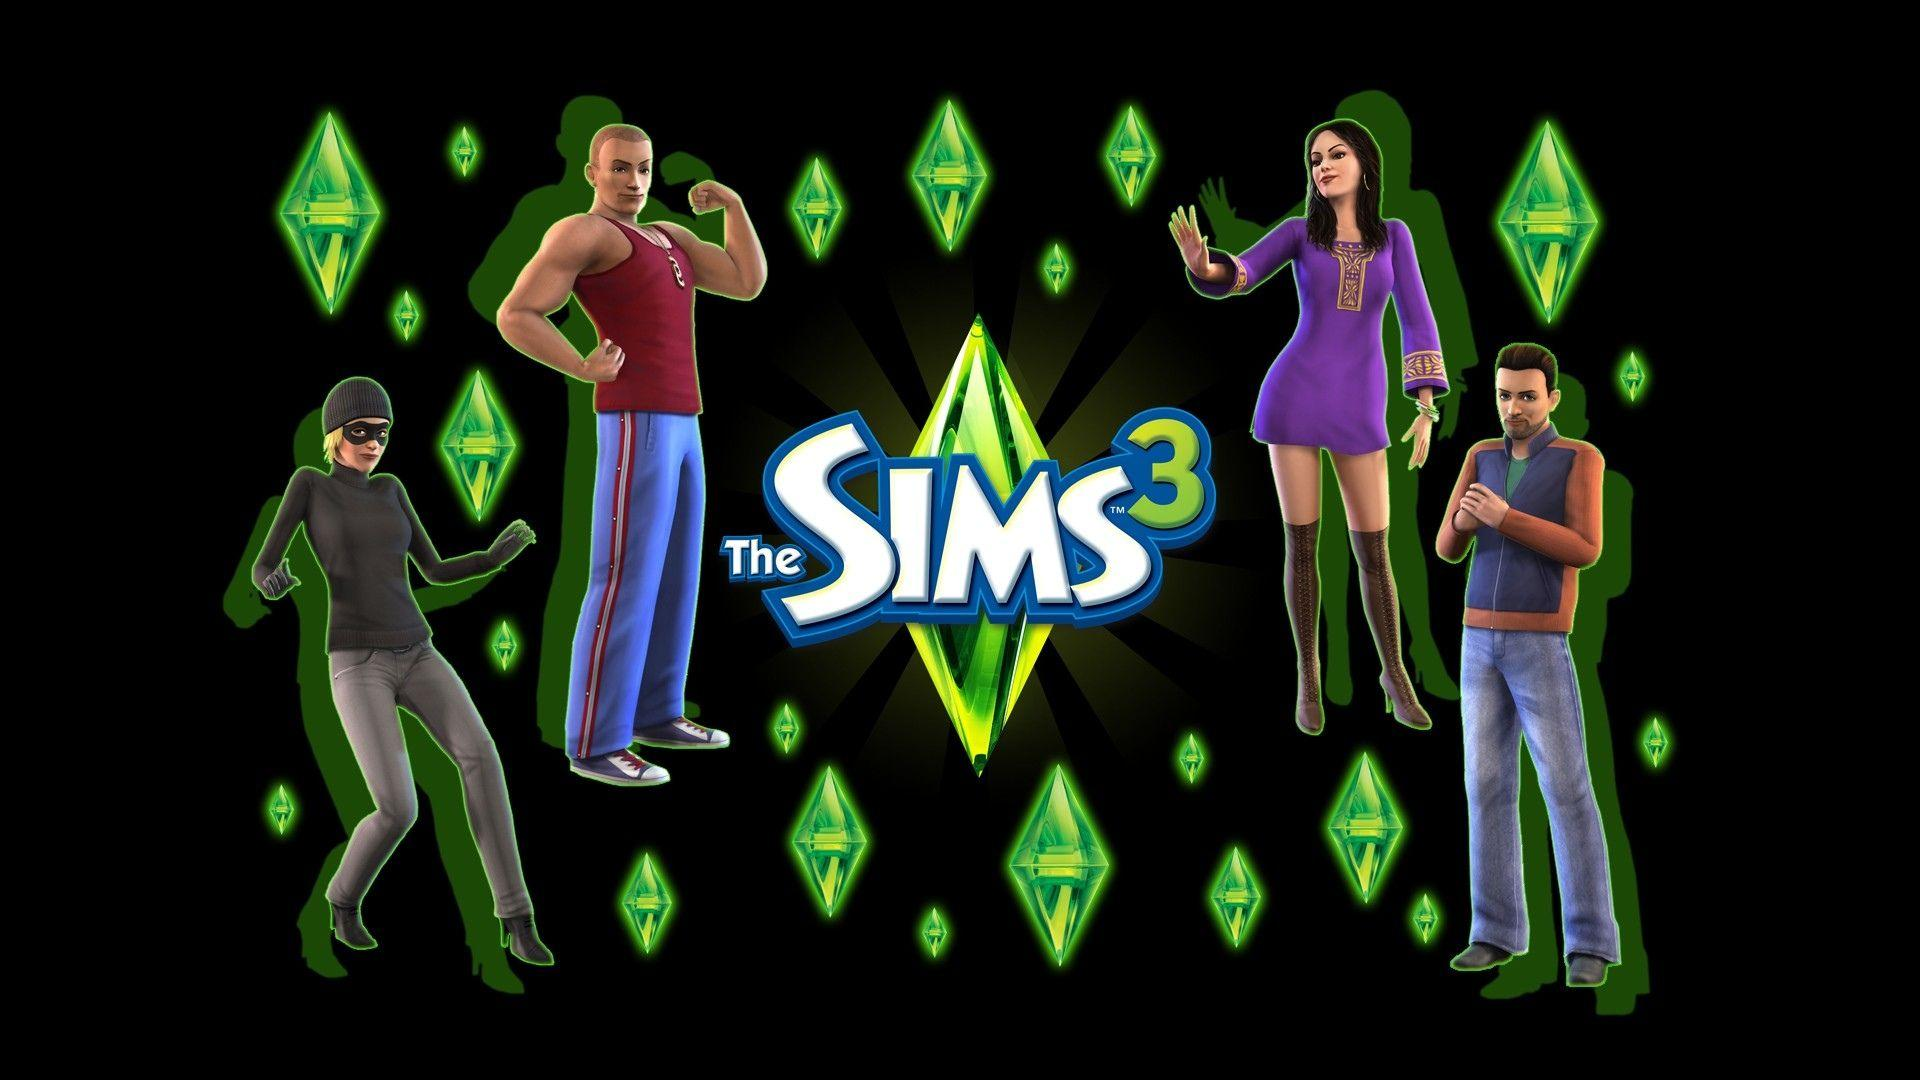 The Sims 3 Computer Wallpapers, Desktop Backgrounds | 1920x1080 ...